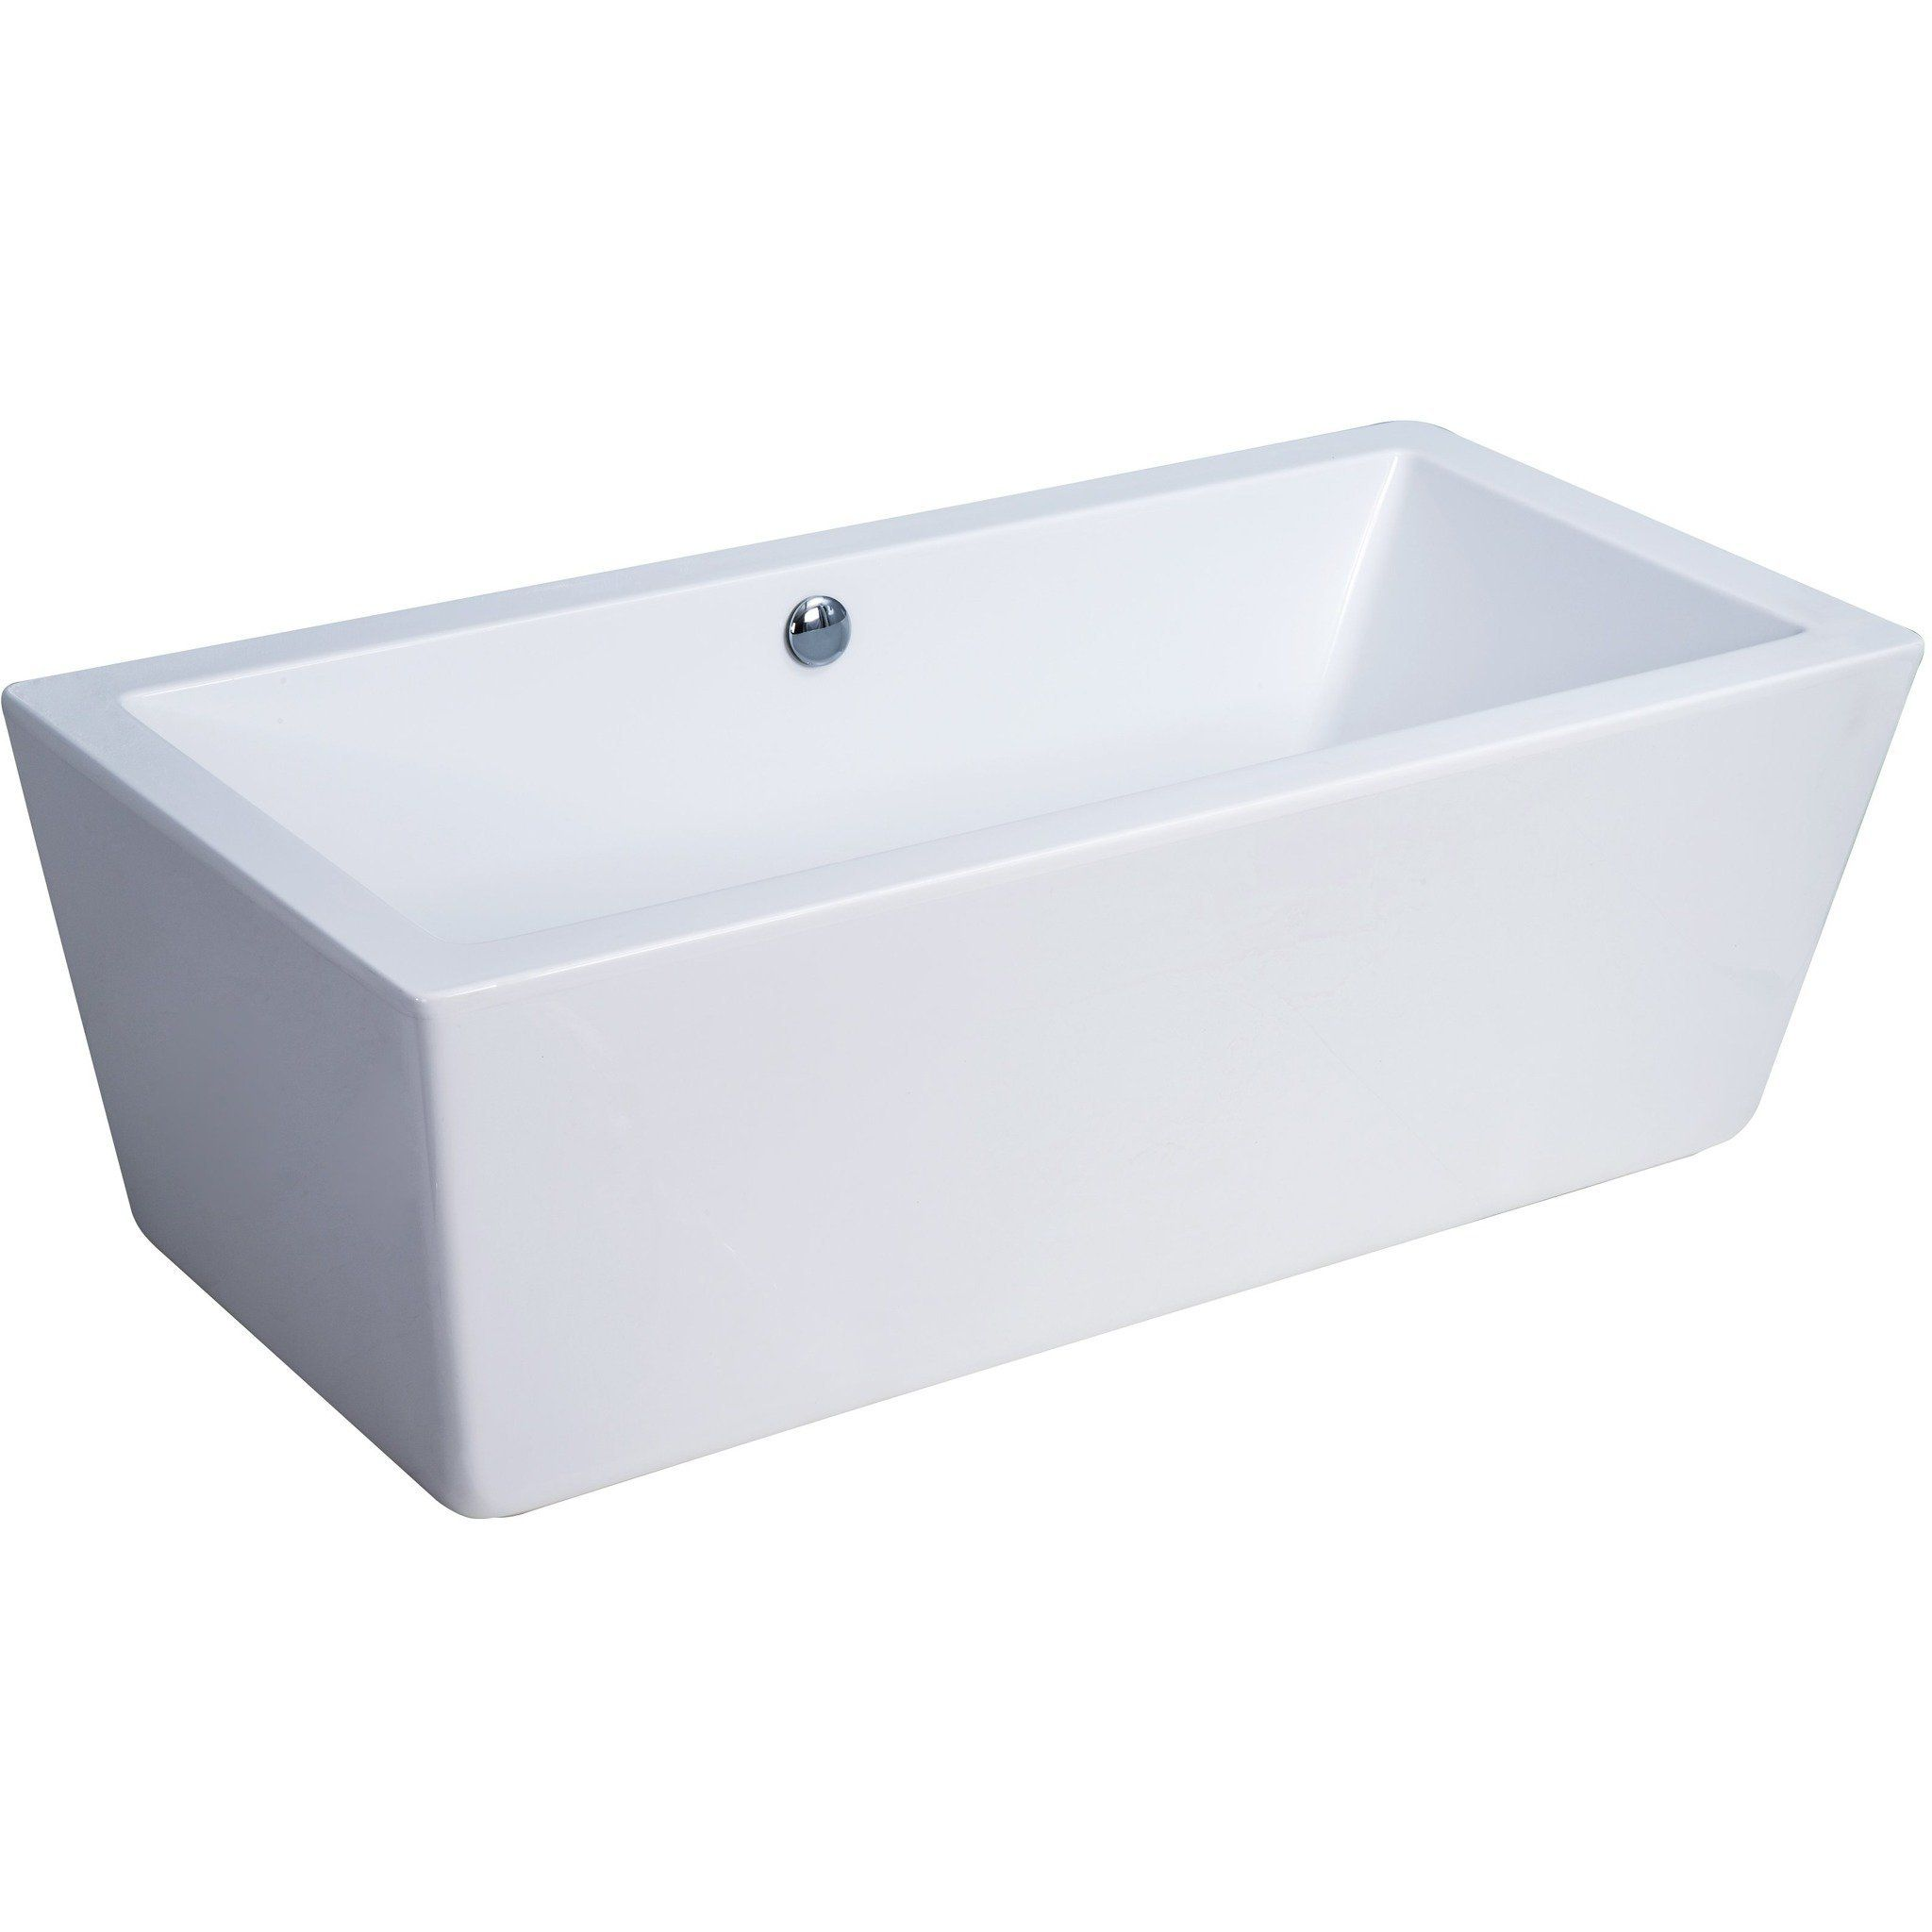 White Acrylic Modern Freestanding Bathtub